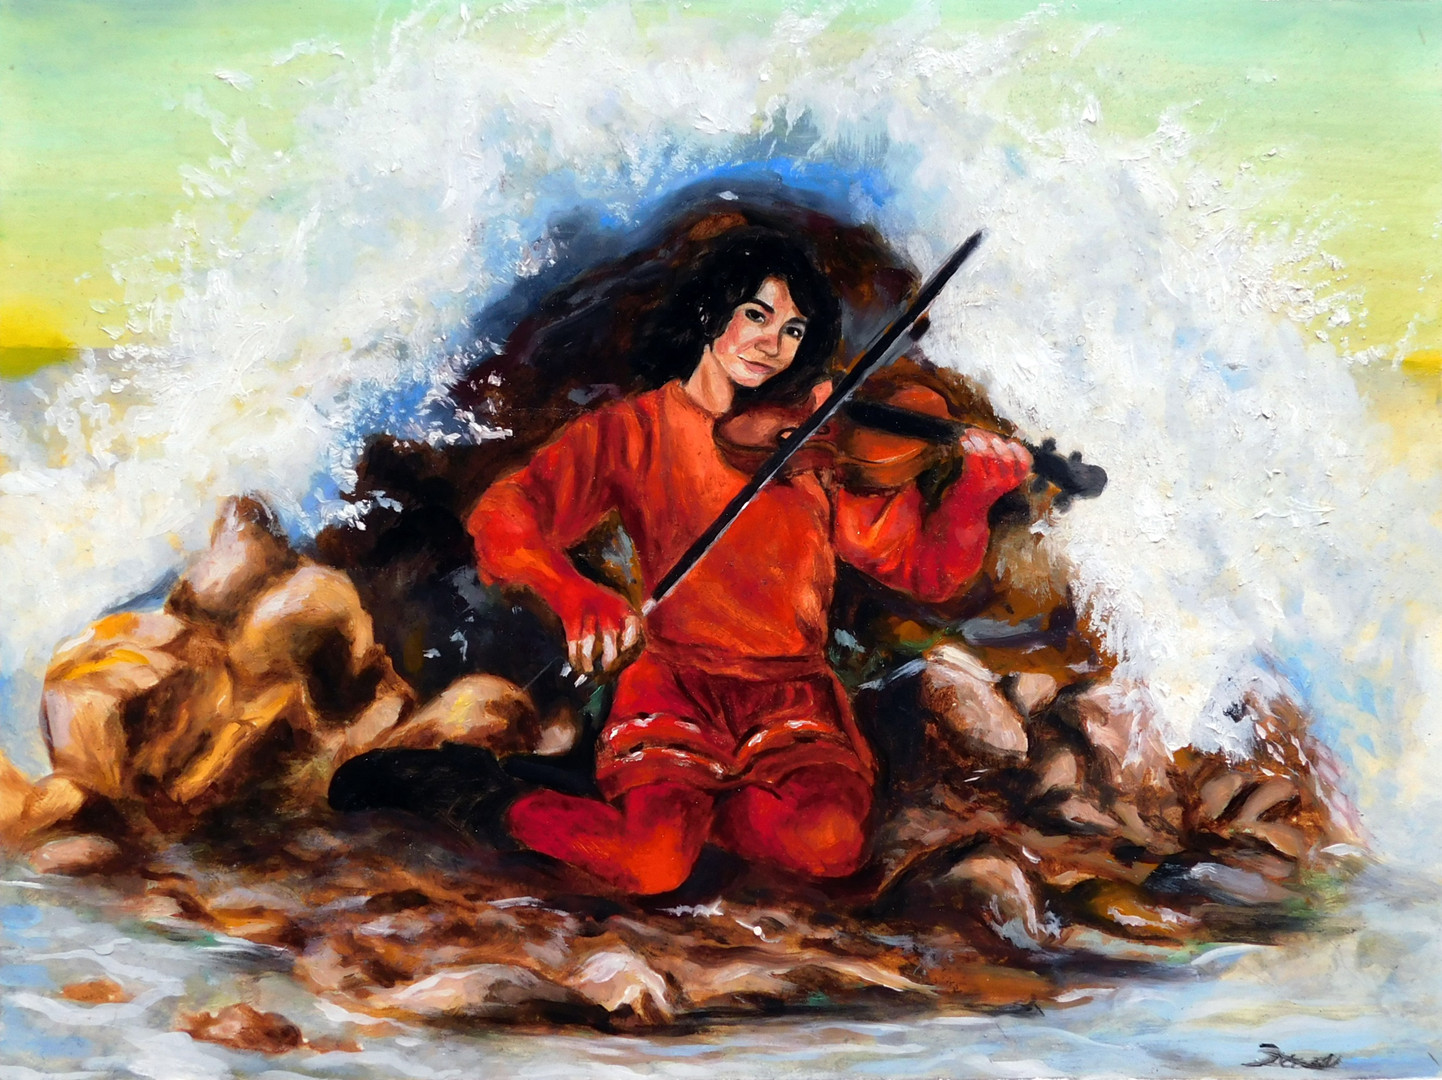 Violin on some rocks